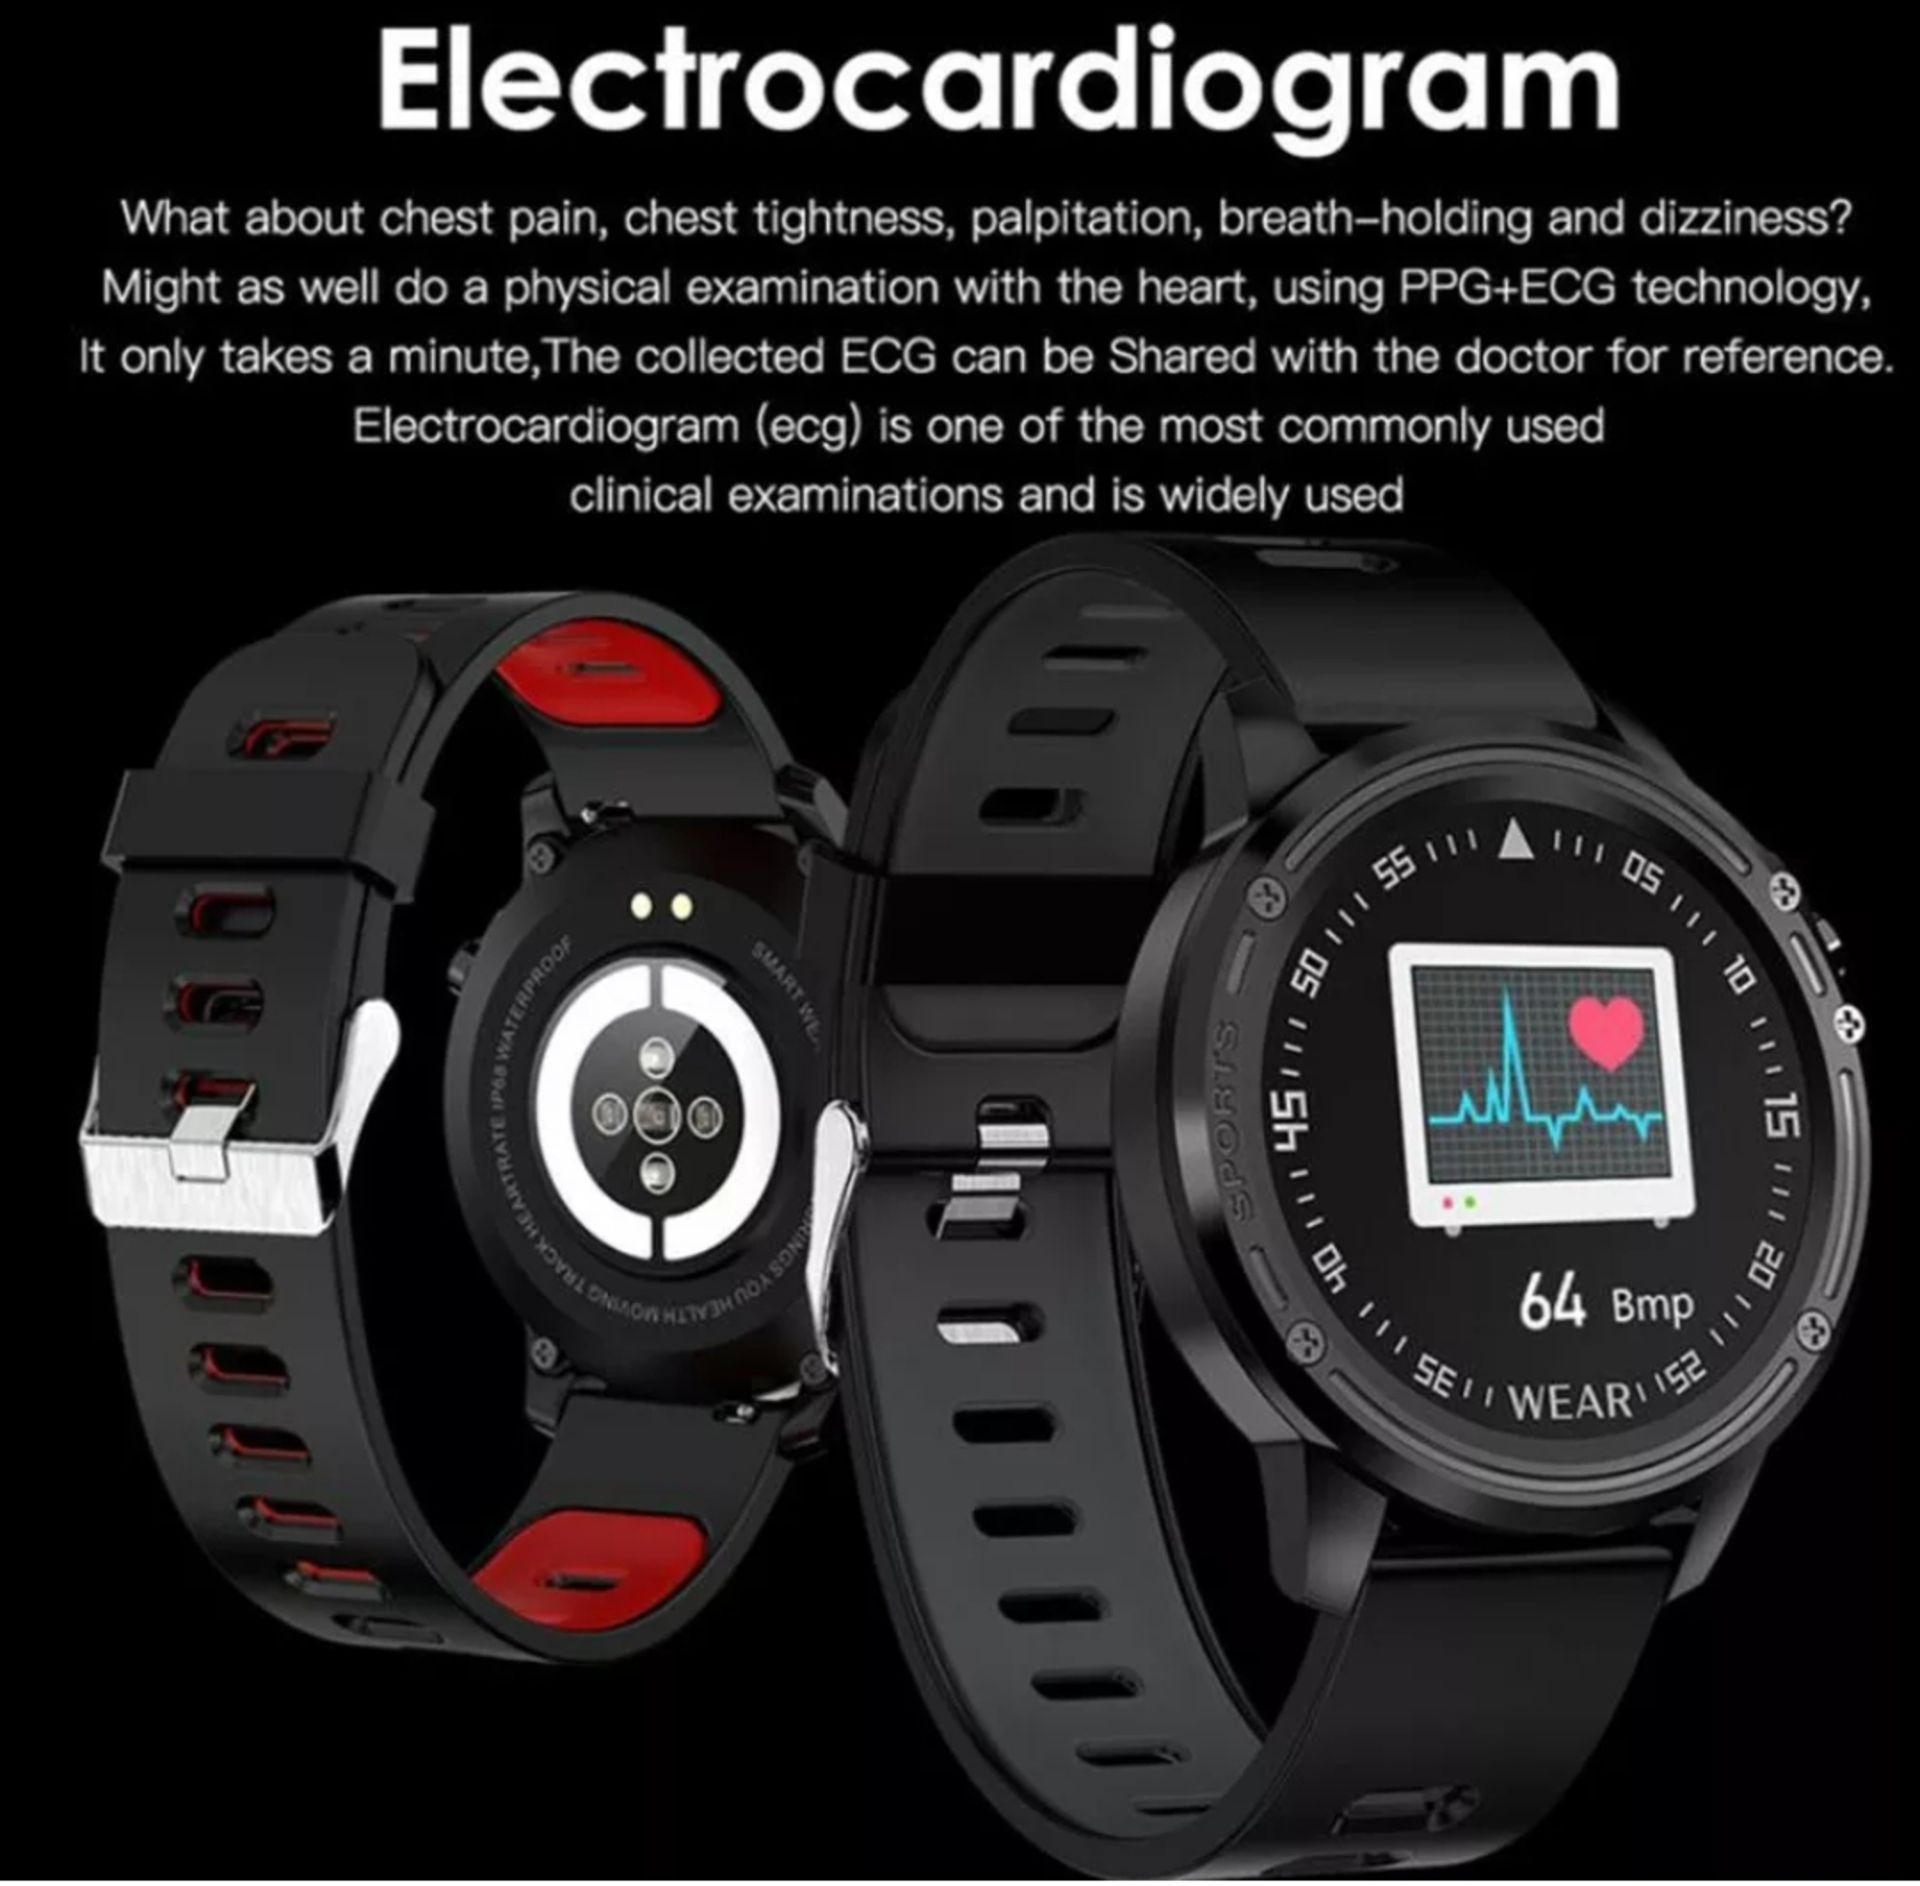 Lot 157 - L8 Blood Pressure, Oxygen, Heart Rate Monitor, Bt4.0 Ip68 Smart Watch - Grey/Black Strap